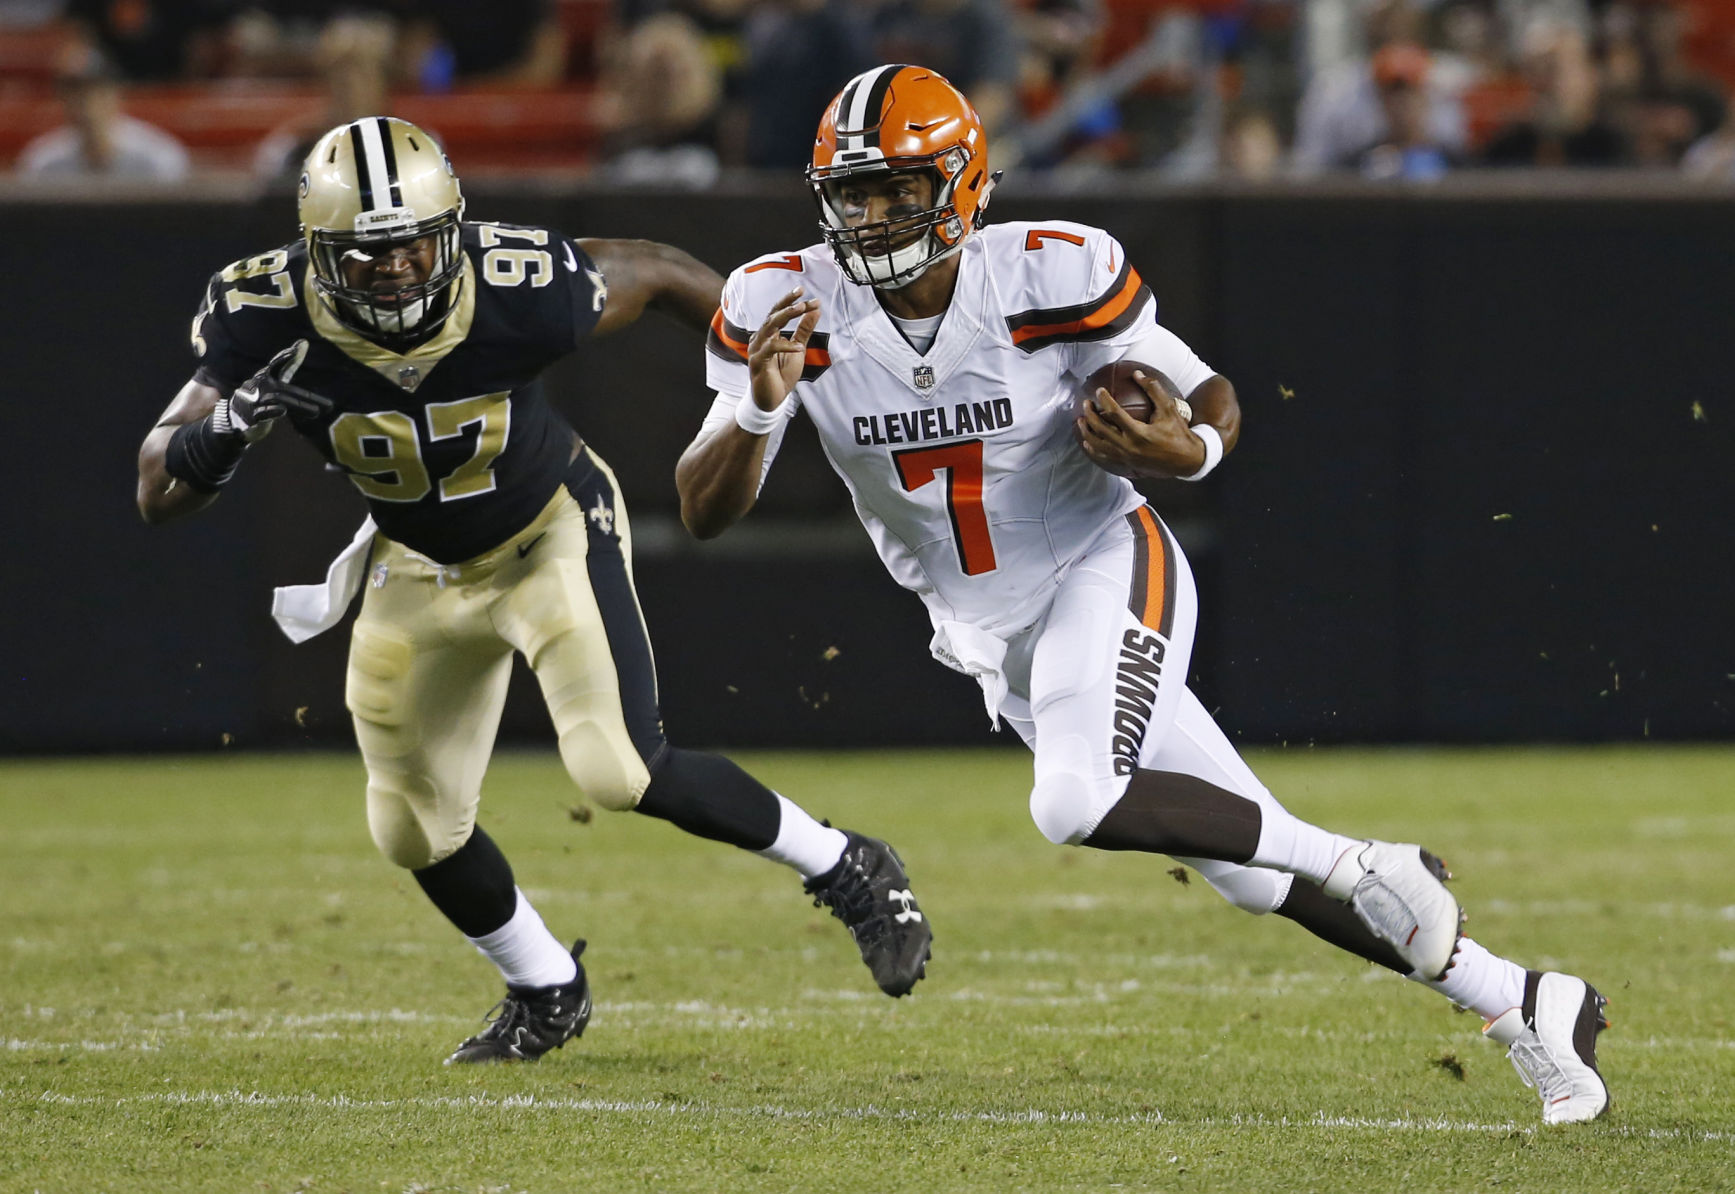 Saints drop preseason opener in Cleveland